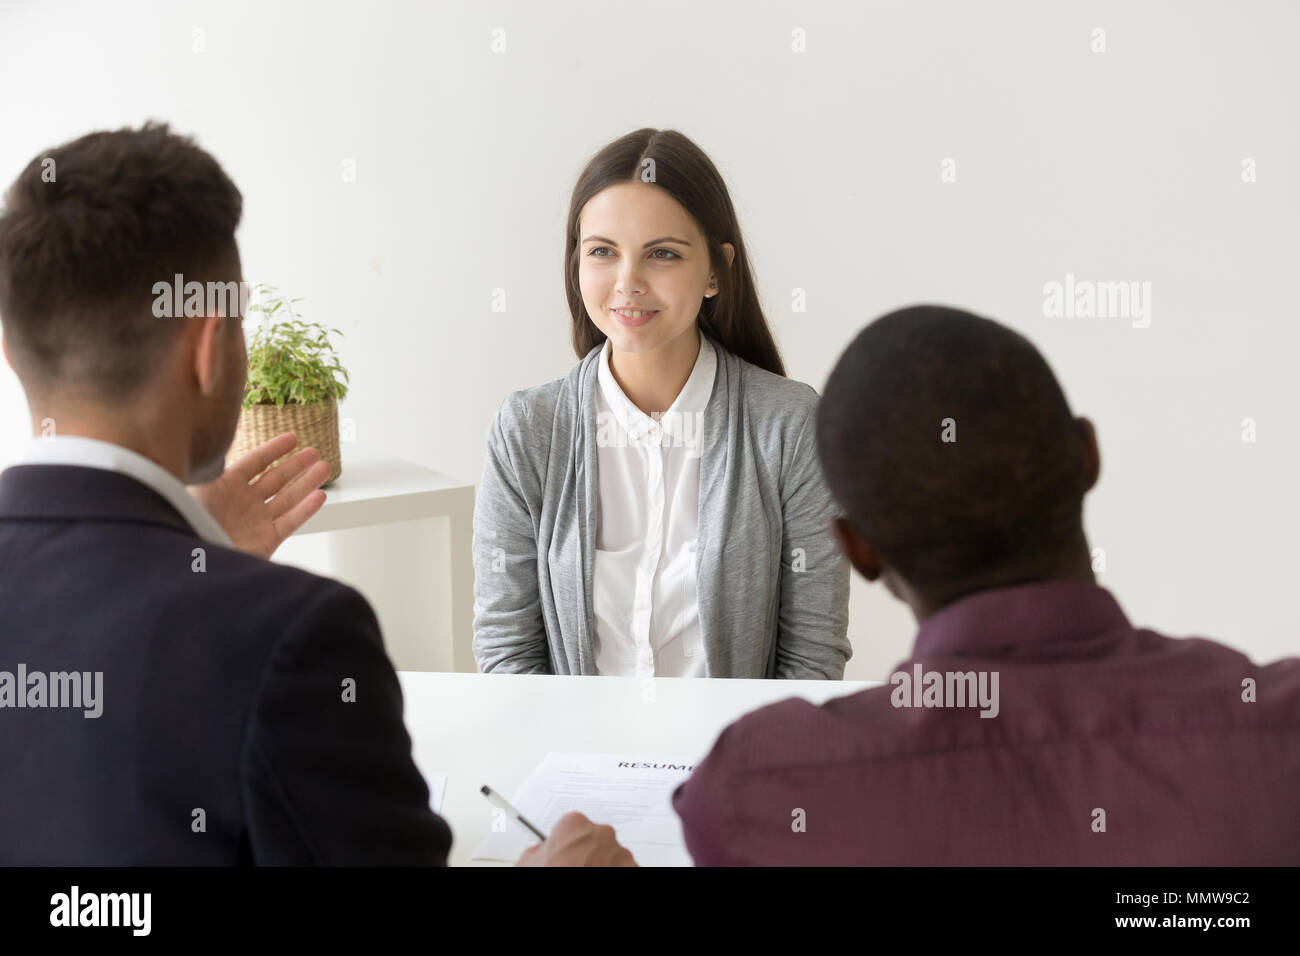 Confident applicant smiling at job interview with diverse hr man - Stock Image